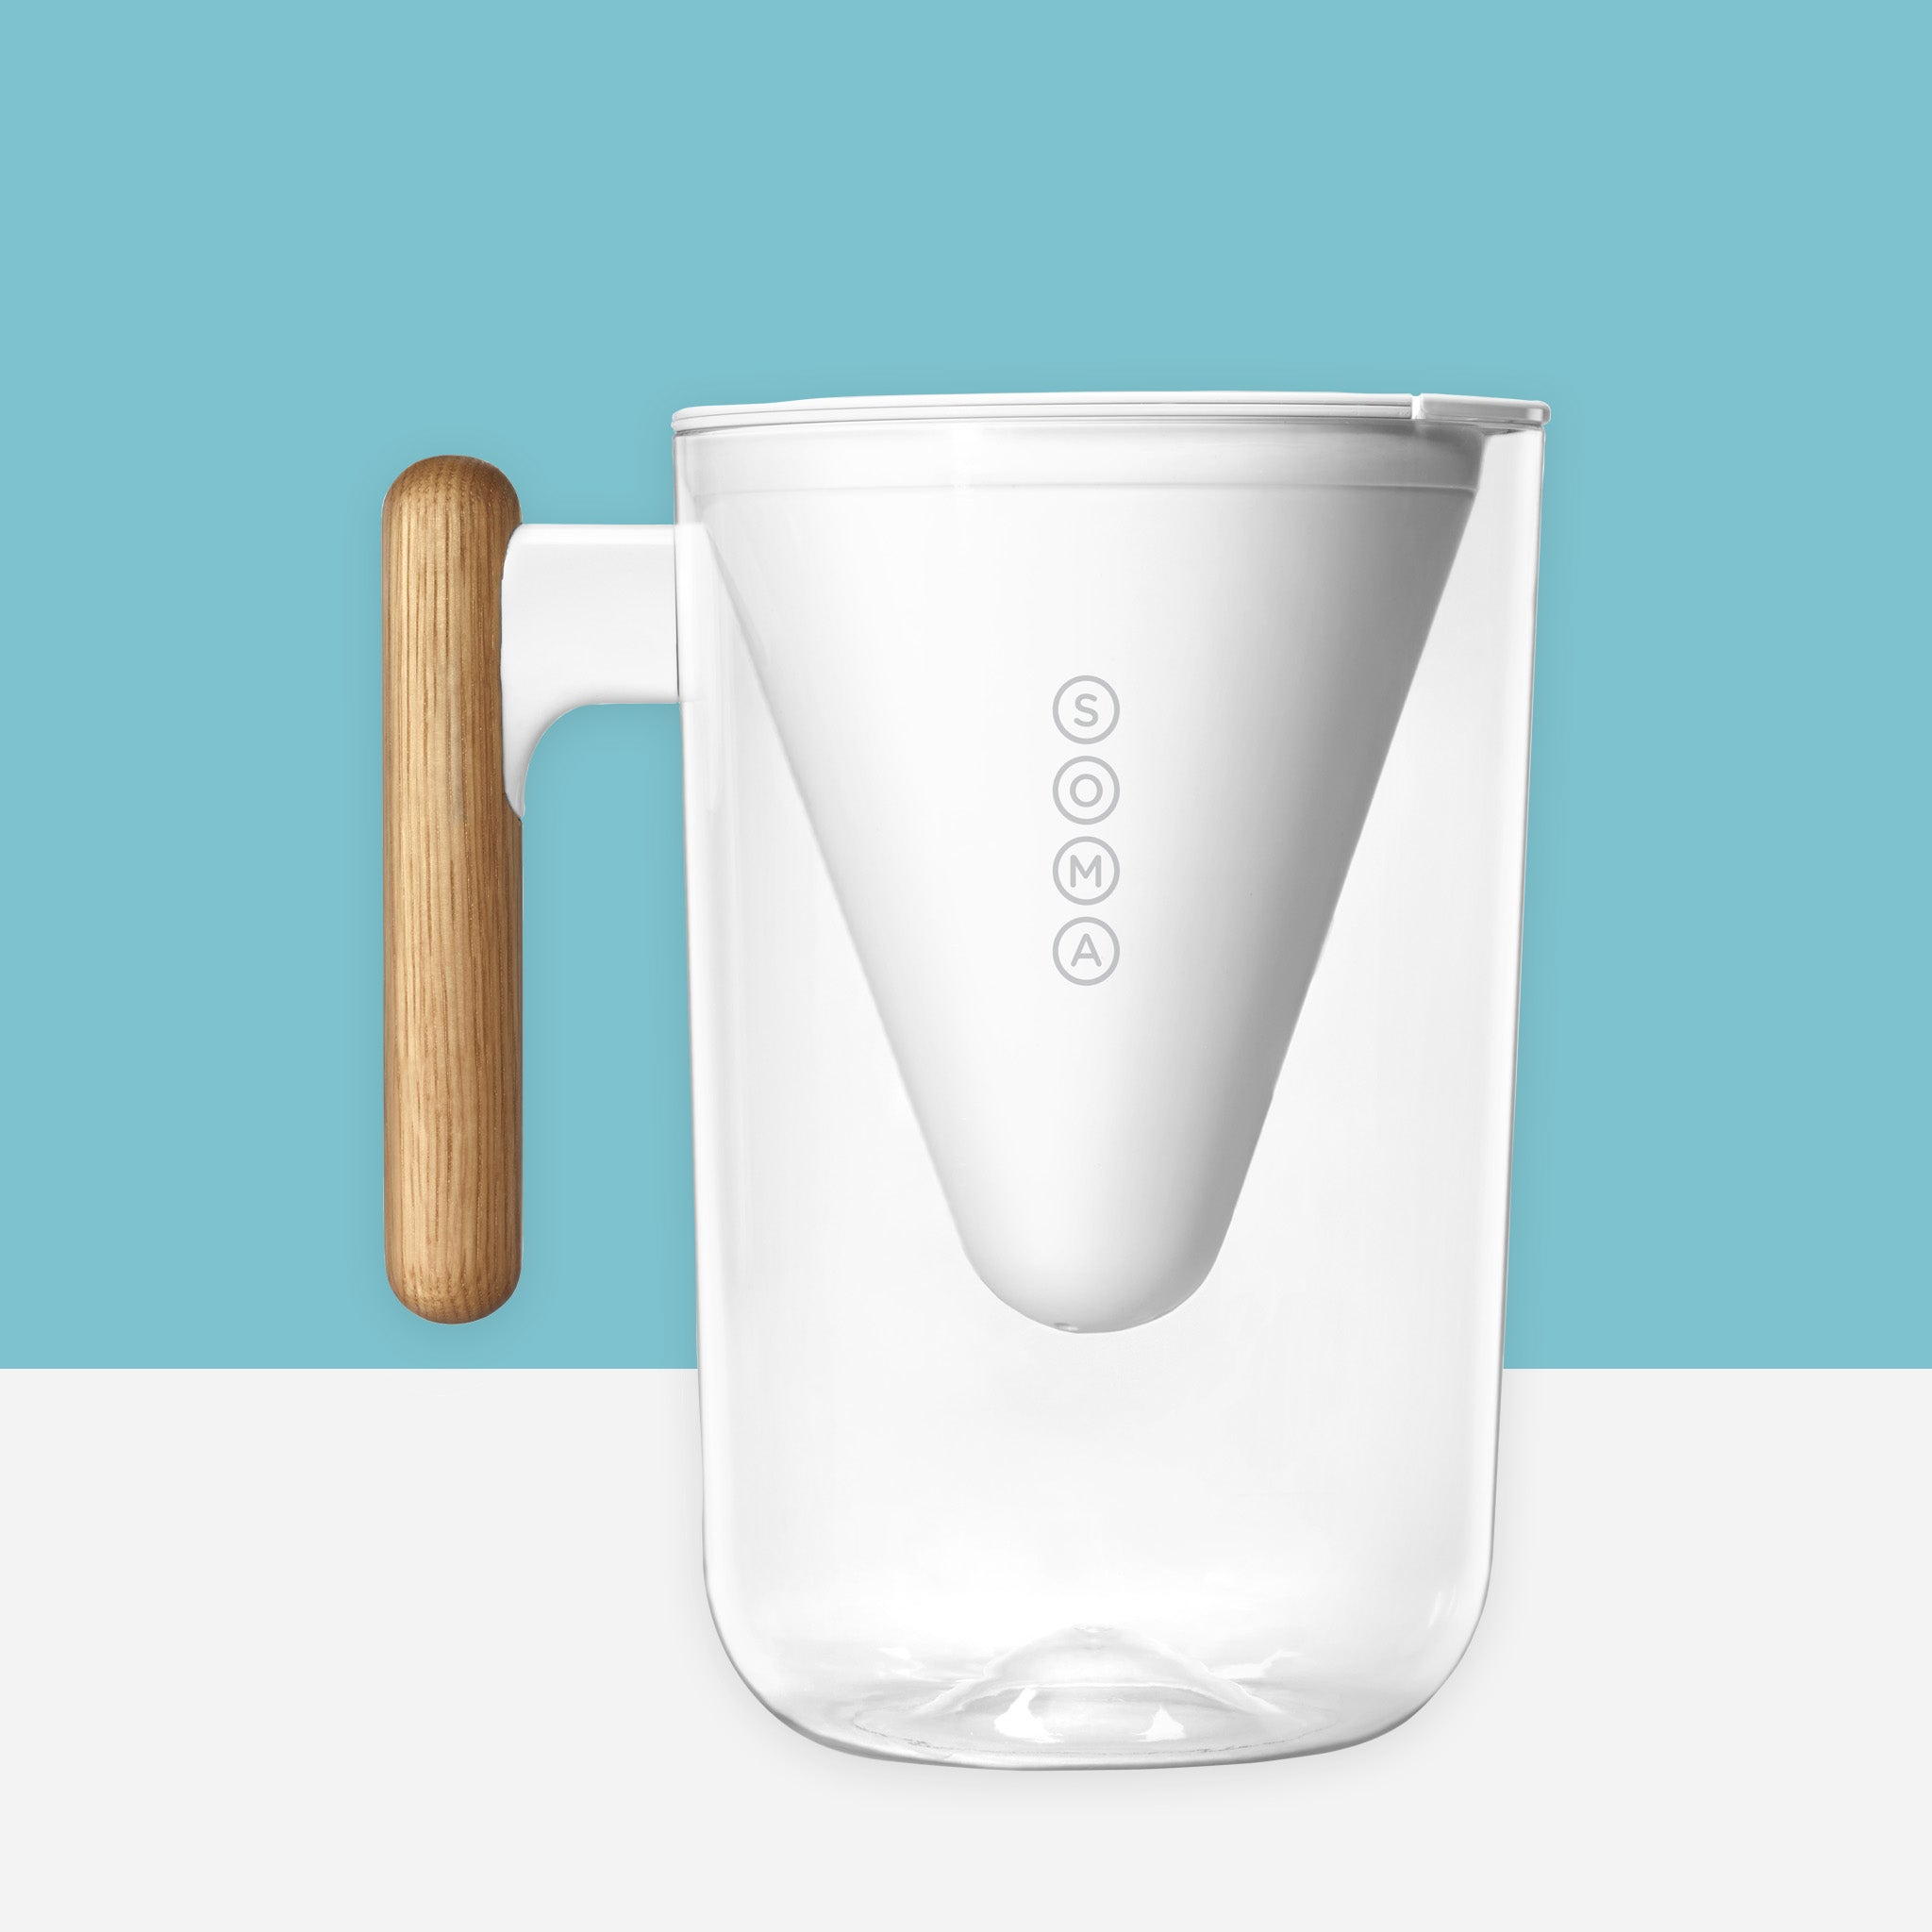 Soma Water Filter Pitcher - 10 Cup - Whitespacehome